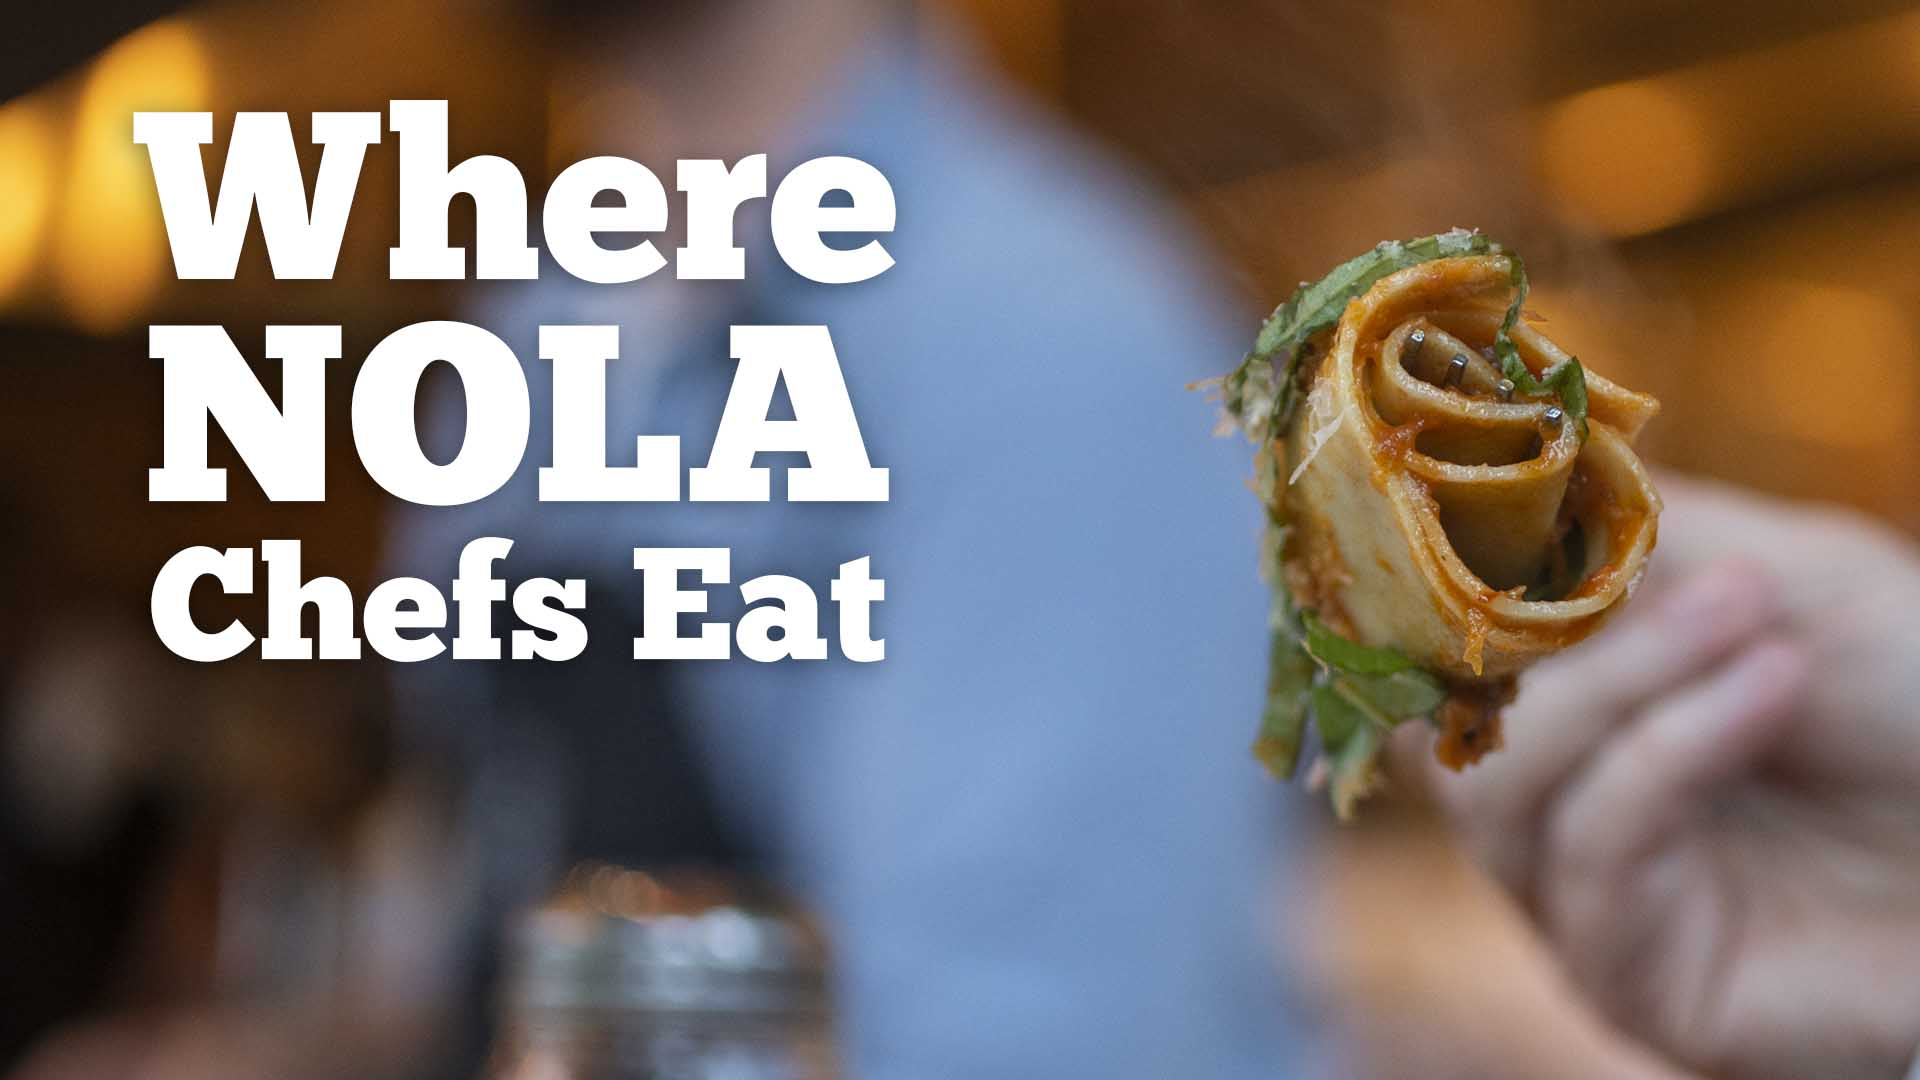 If there's anyone who knows the best places to eat in New Orleans it would be a chef, right? Introducing the new series #WhereNOLAChefsEat starting Monday, April 15. https://t.co/2zwo7Jll65